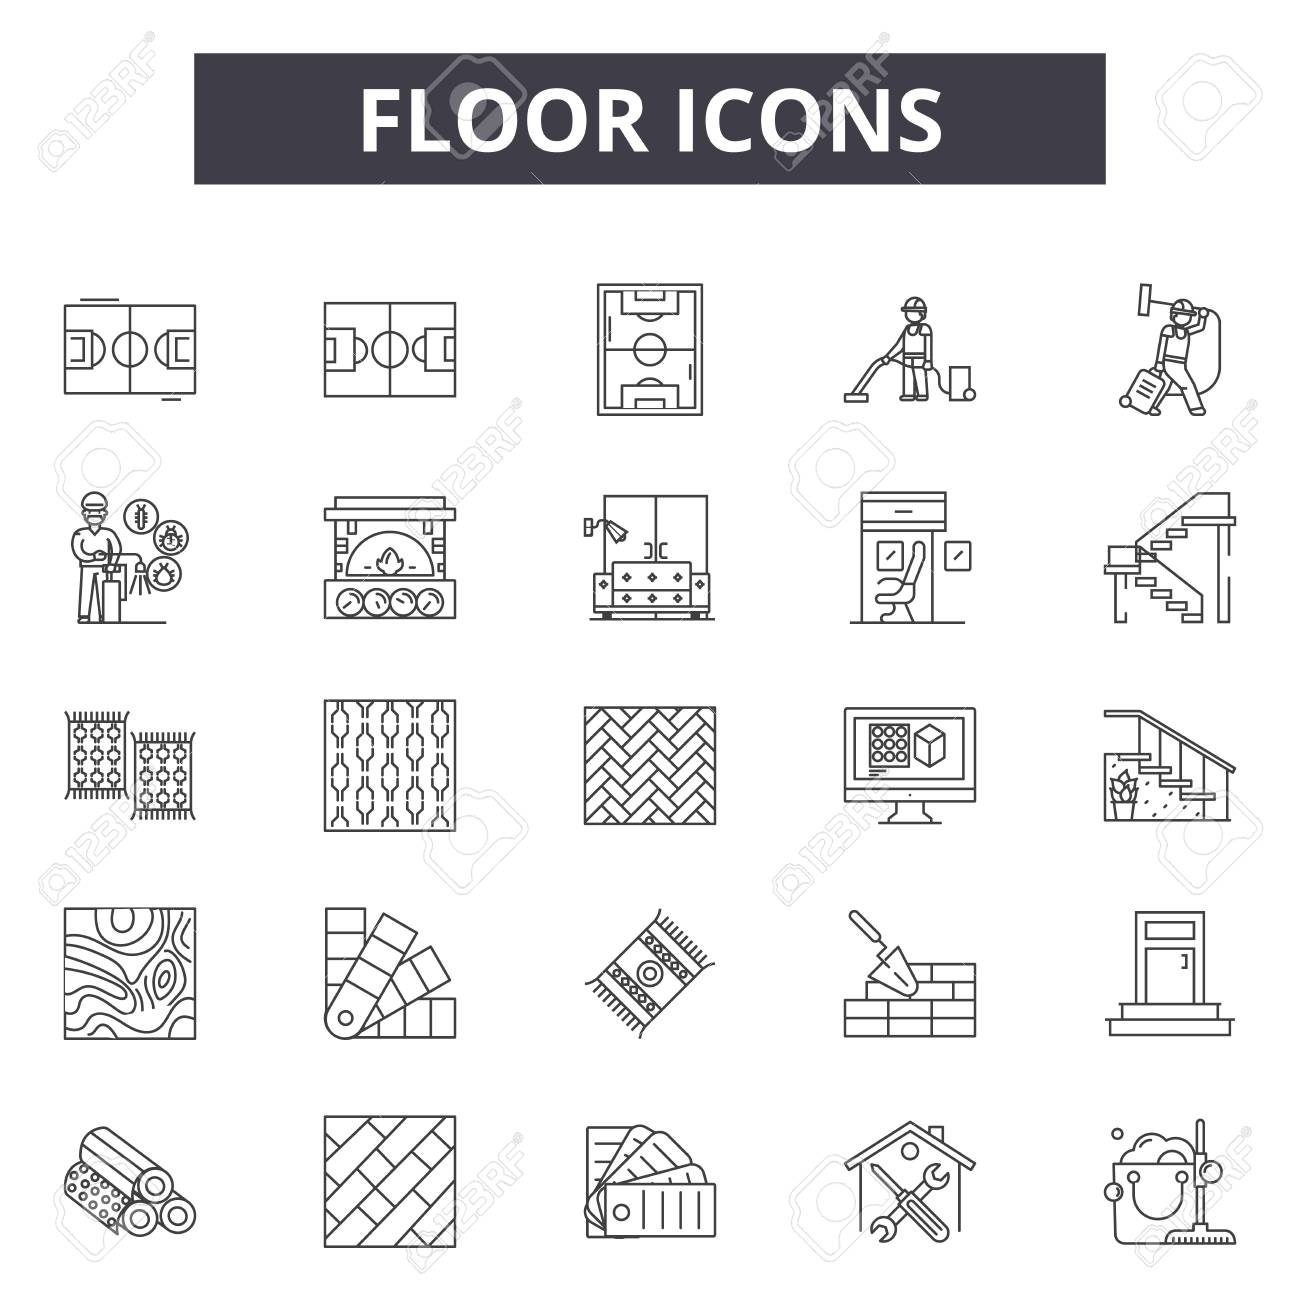 Floor icons line icons for web and mobile. Editable stroke signs. Floor icons outline concept illustrations - 119389065